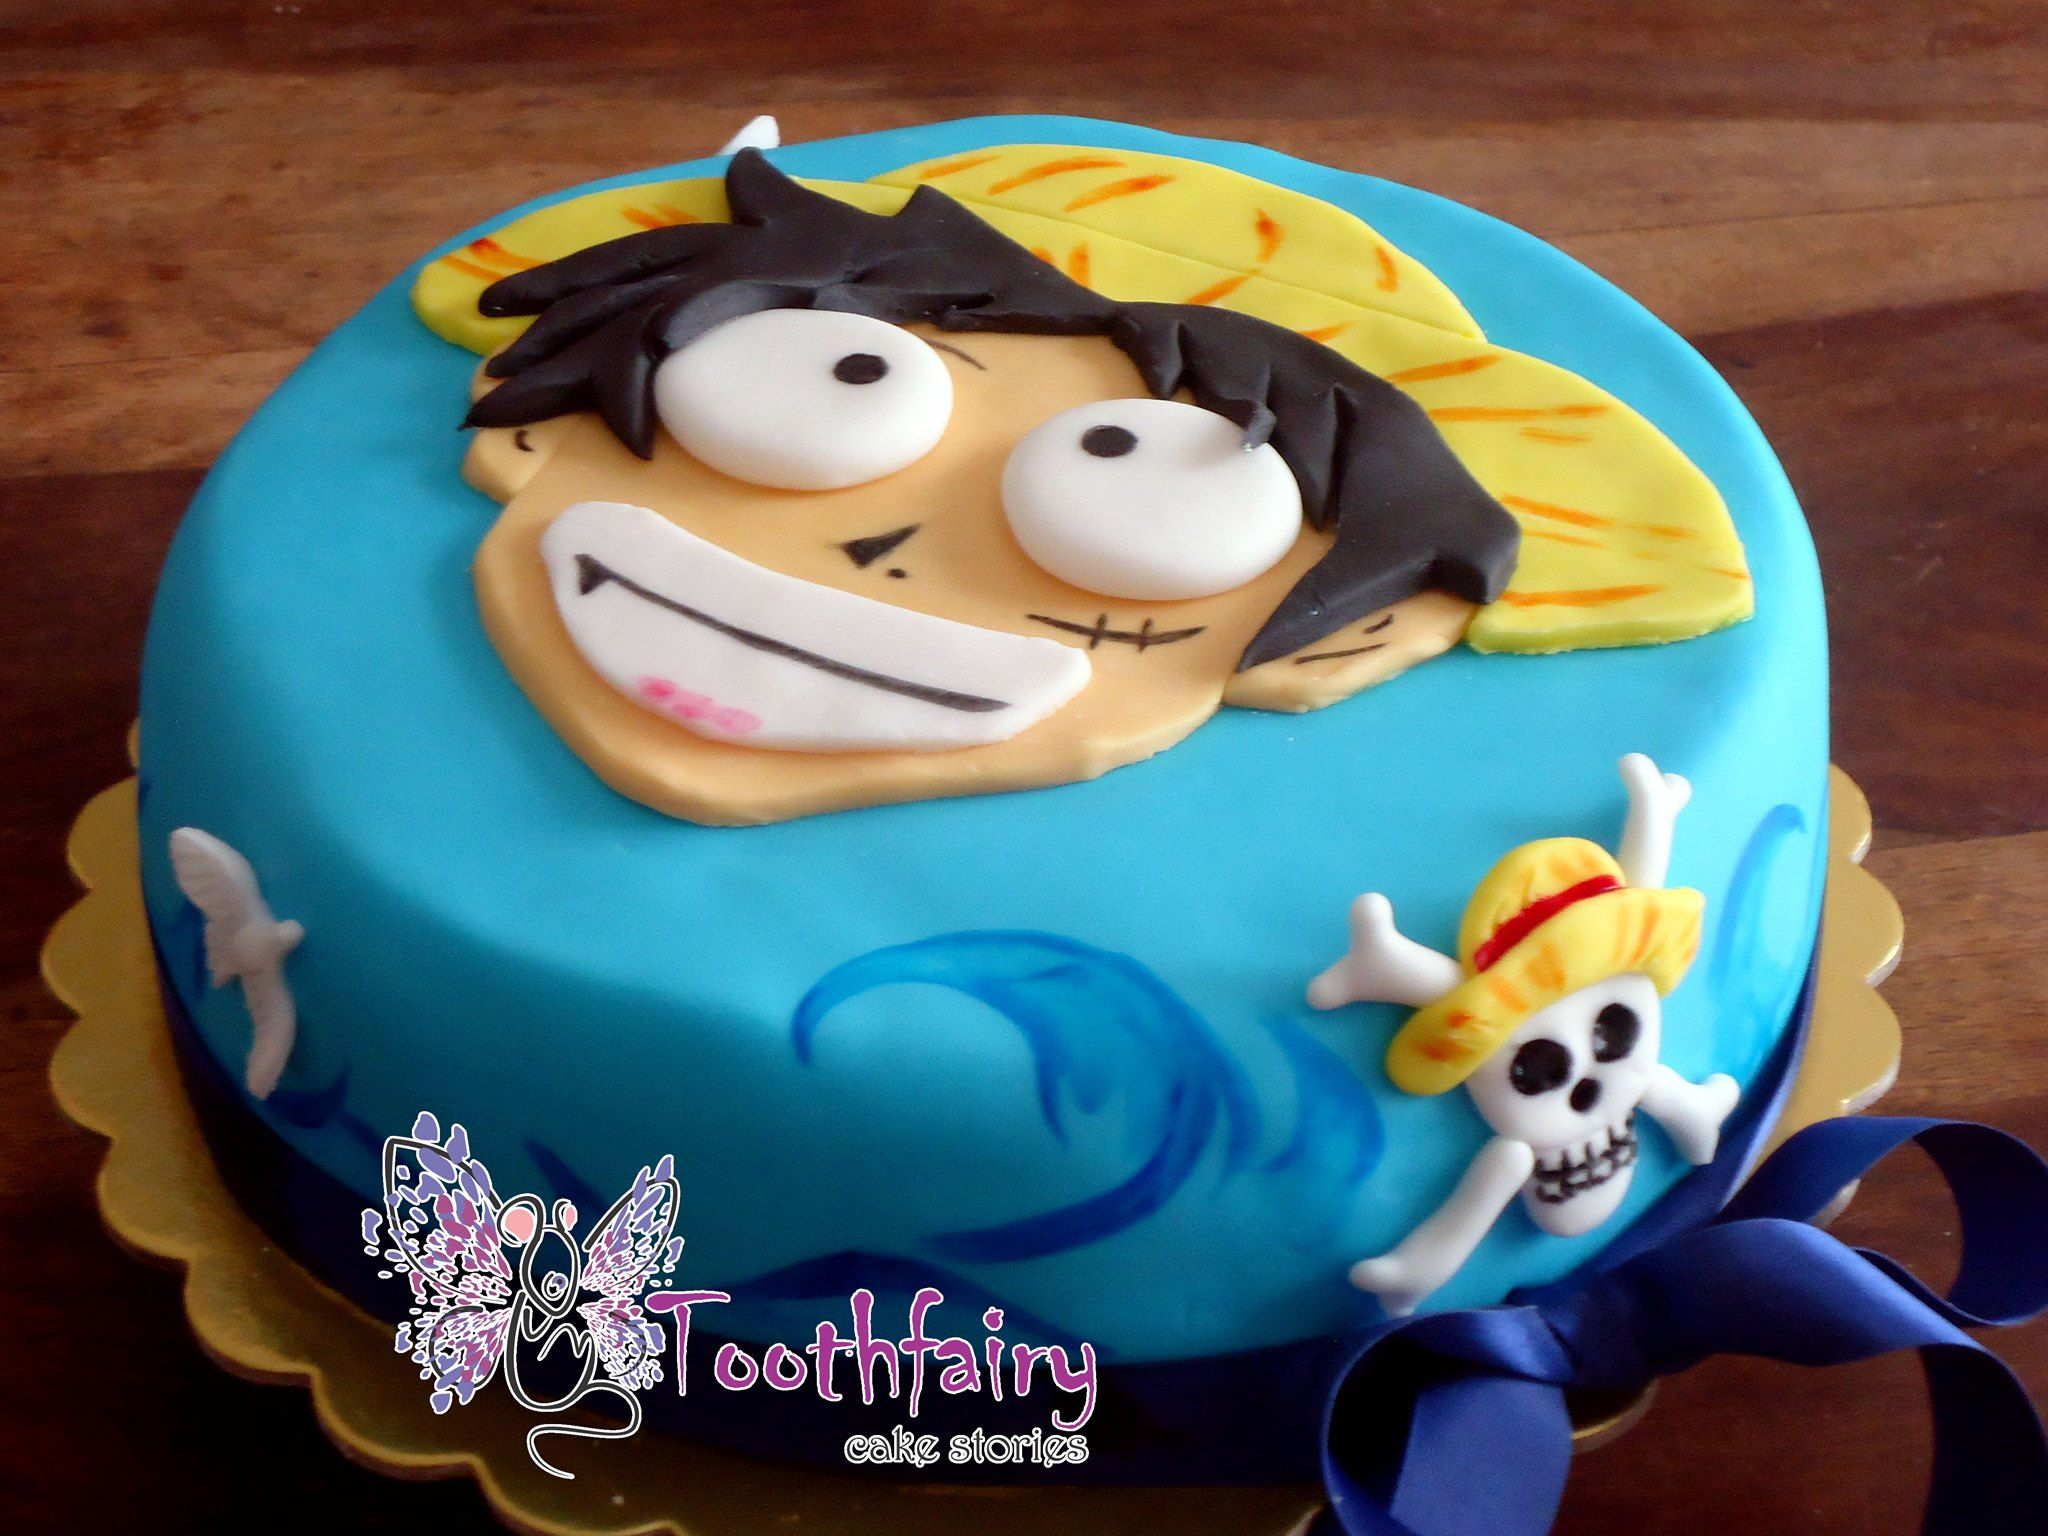 "Top one piece-Luffy"" cake 